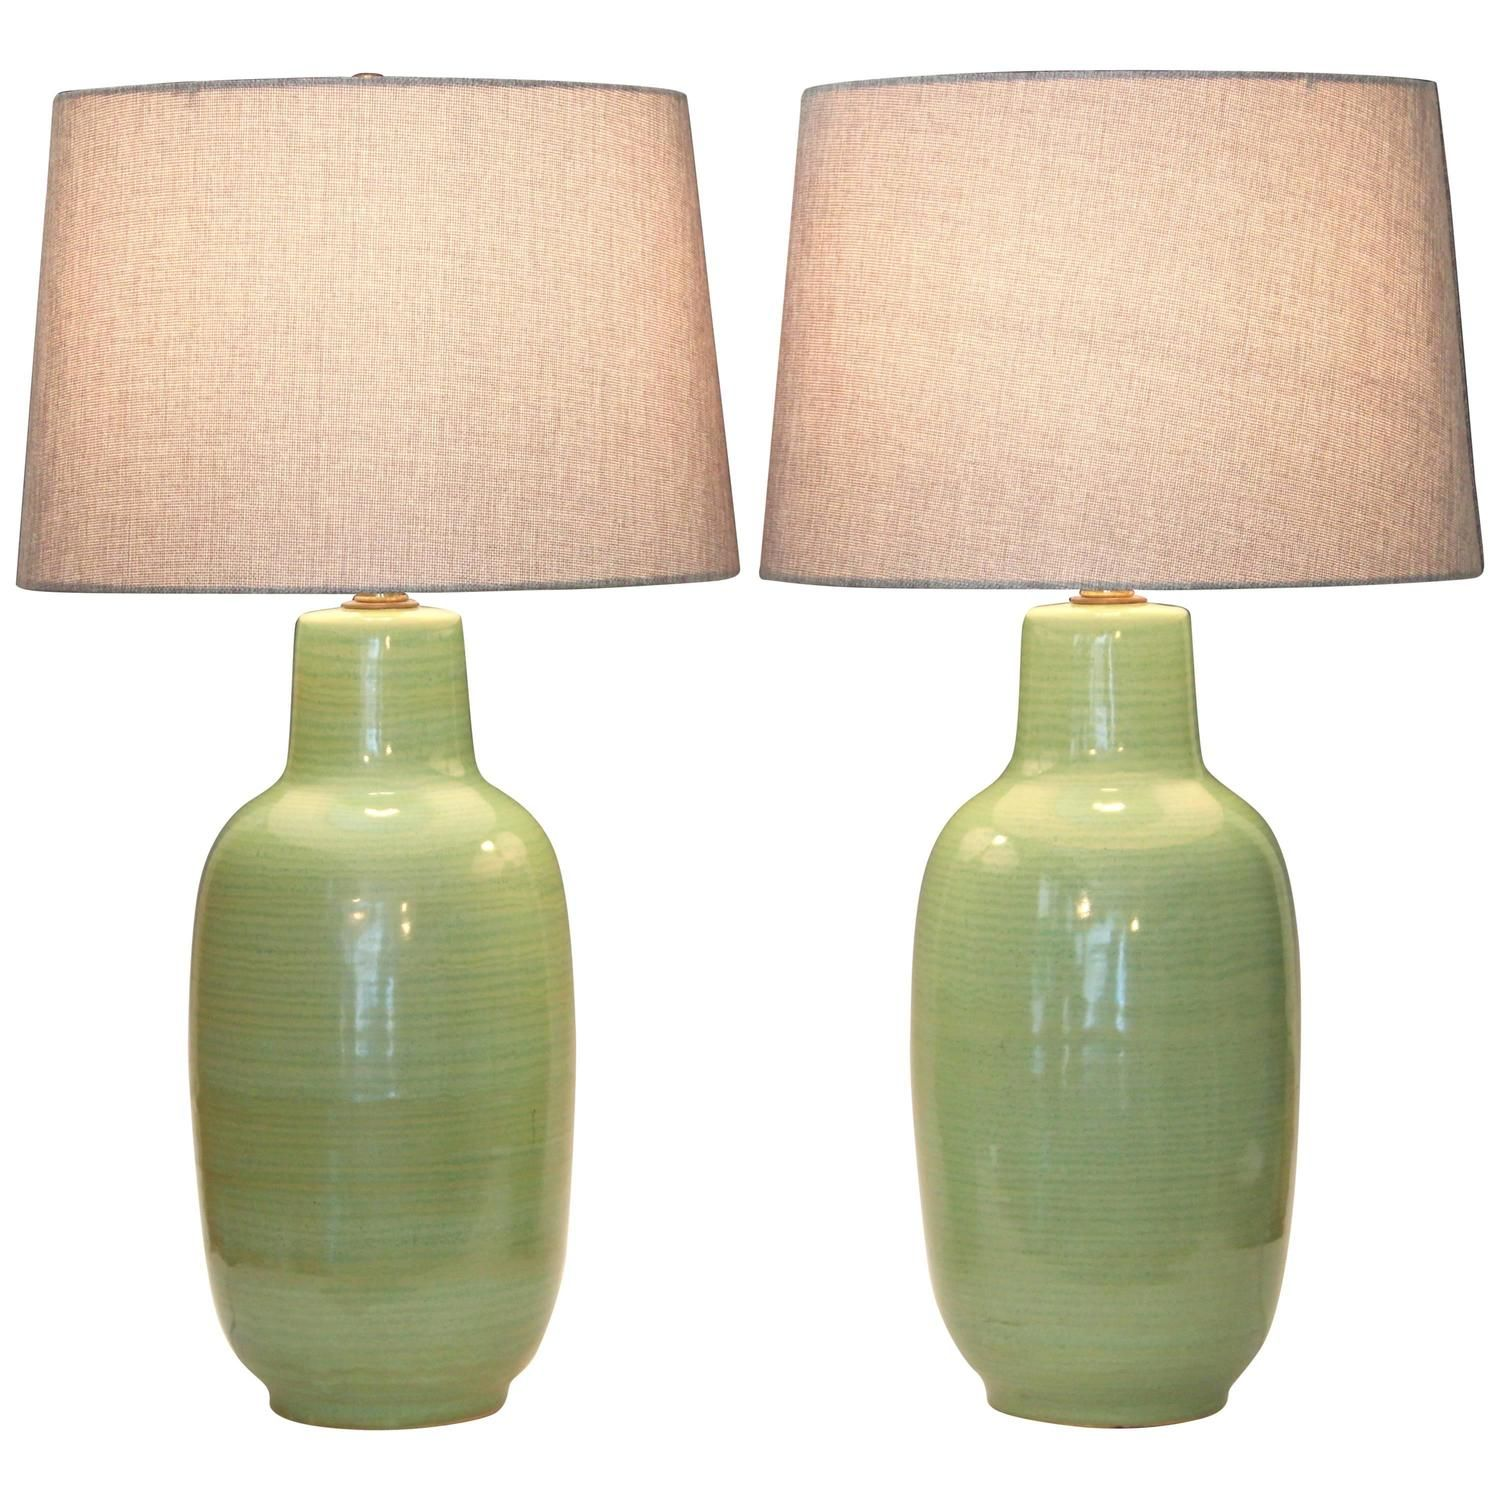 Pair Of Vintage Celadon Green Flambe Studio Pottery Lamps From A Unique Vintage Table Lamp Lamp Pottery Lamp